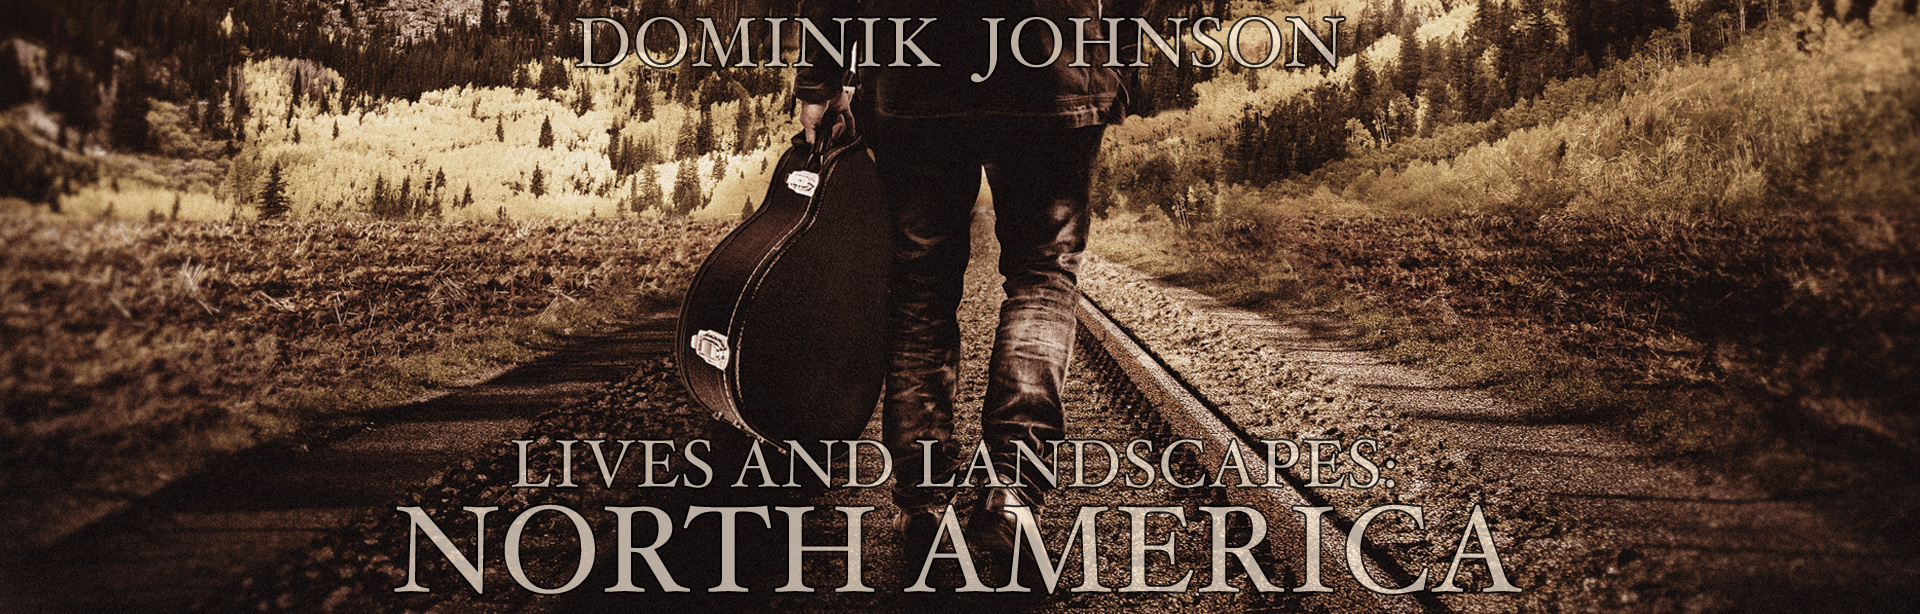 Dominik Johnson - Lives and Landscapes North America